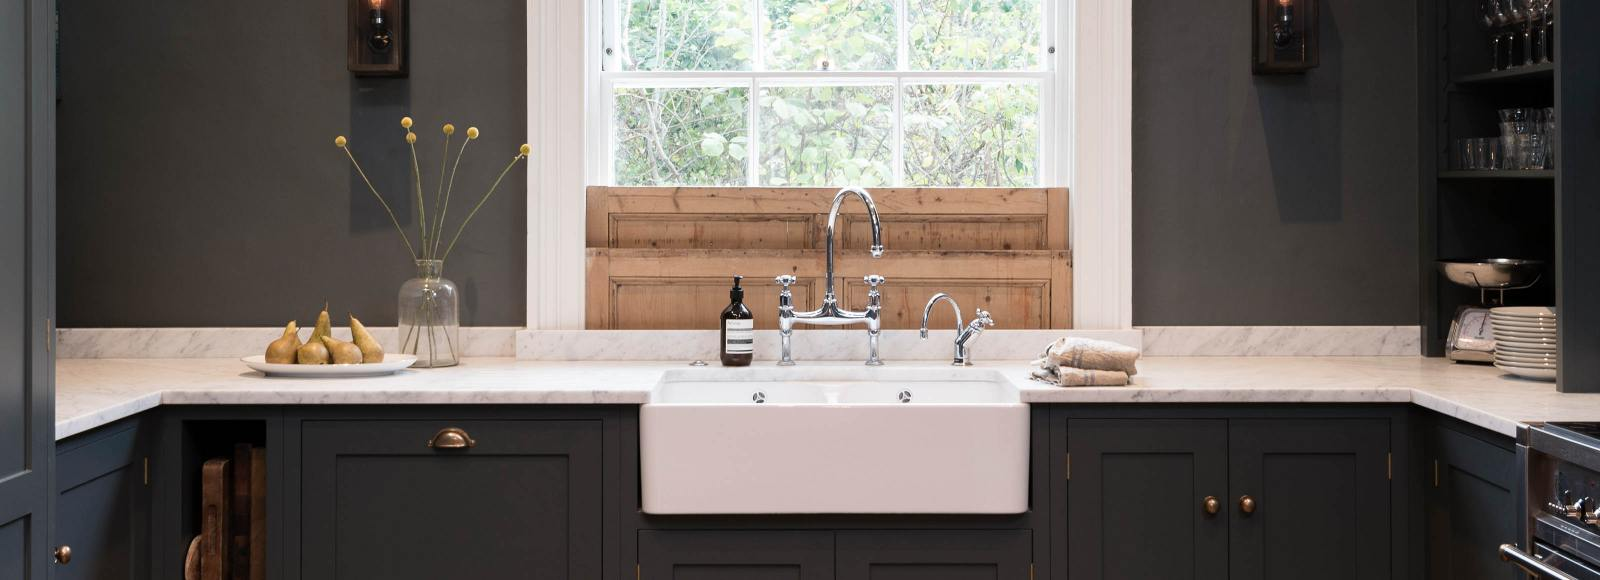 Sinks & Taps photo 4